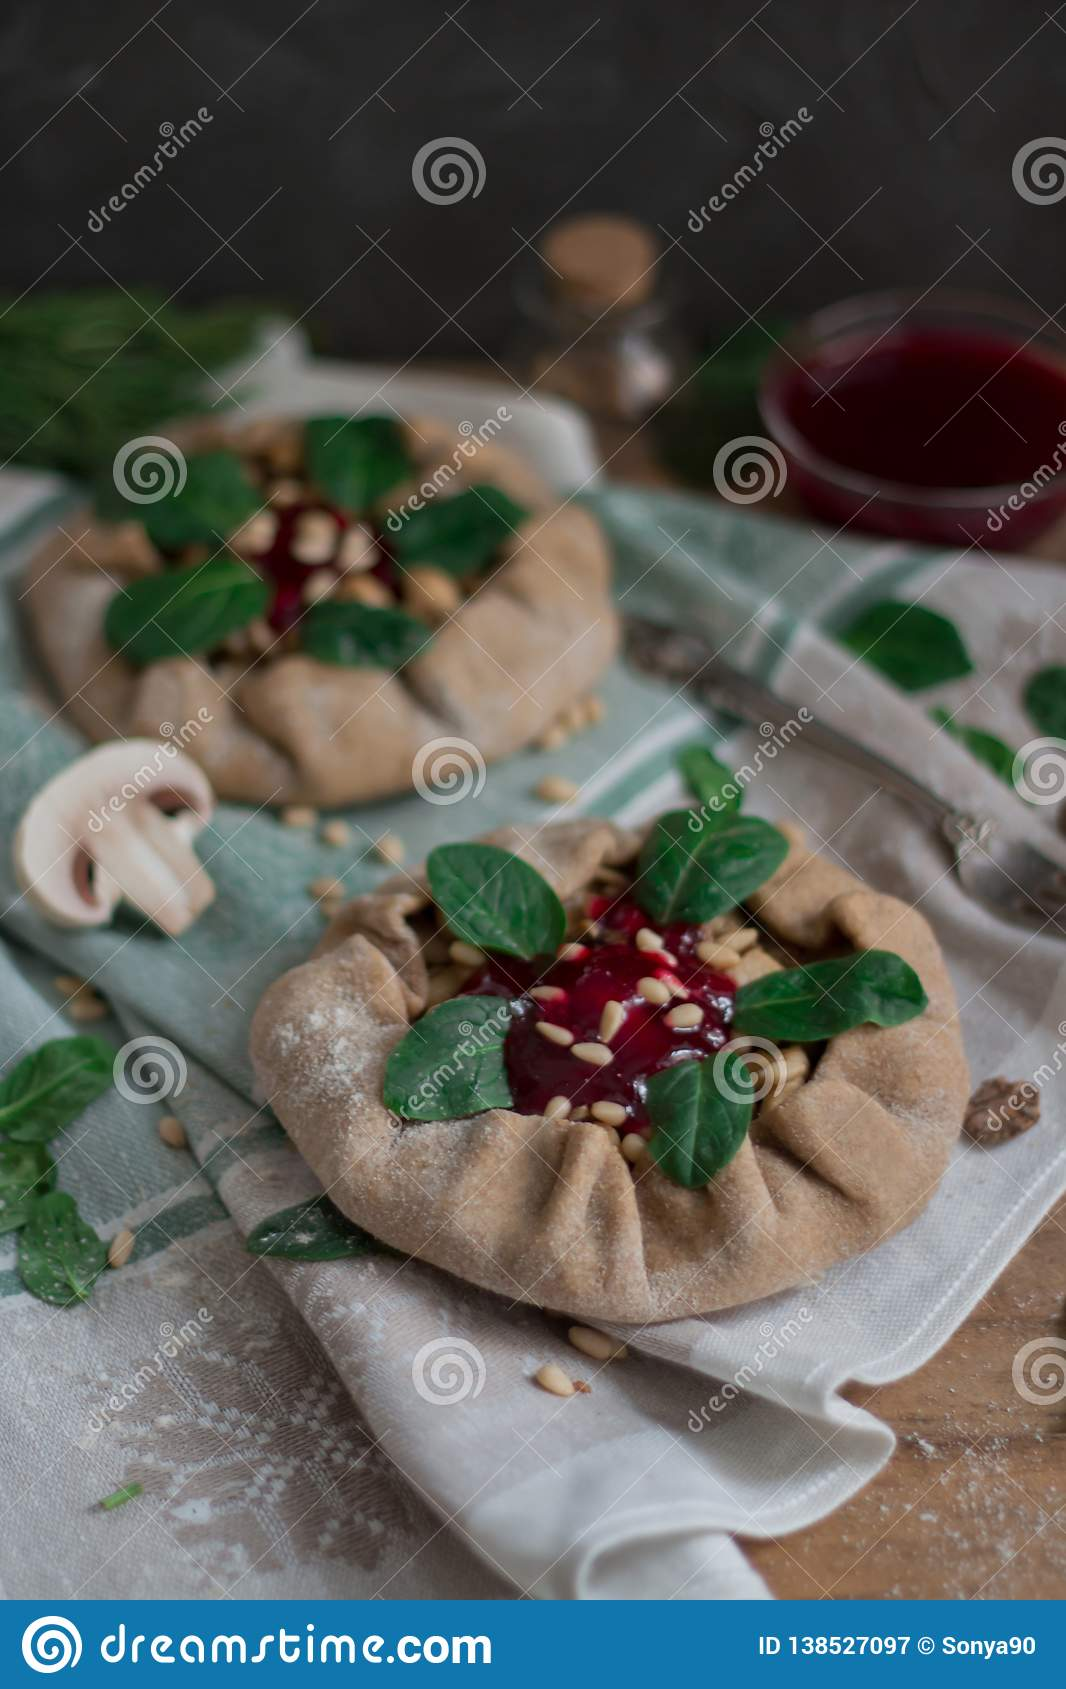 Pies with mushrooms, chicken, spinach, pine nuts and lingonberry sauce.